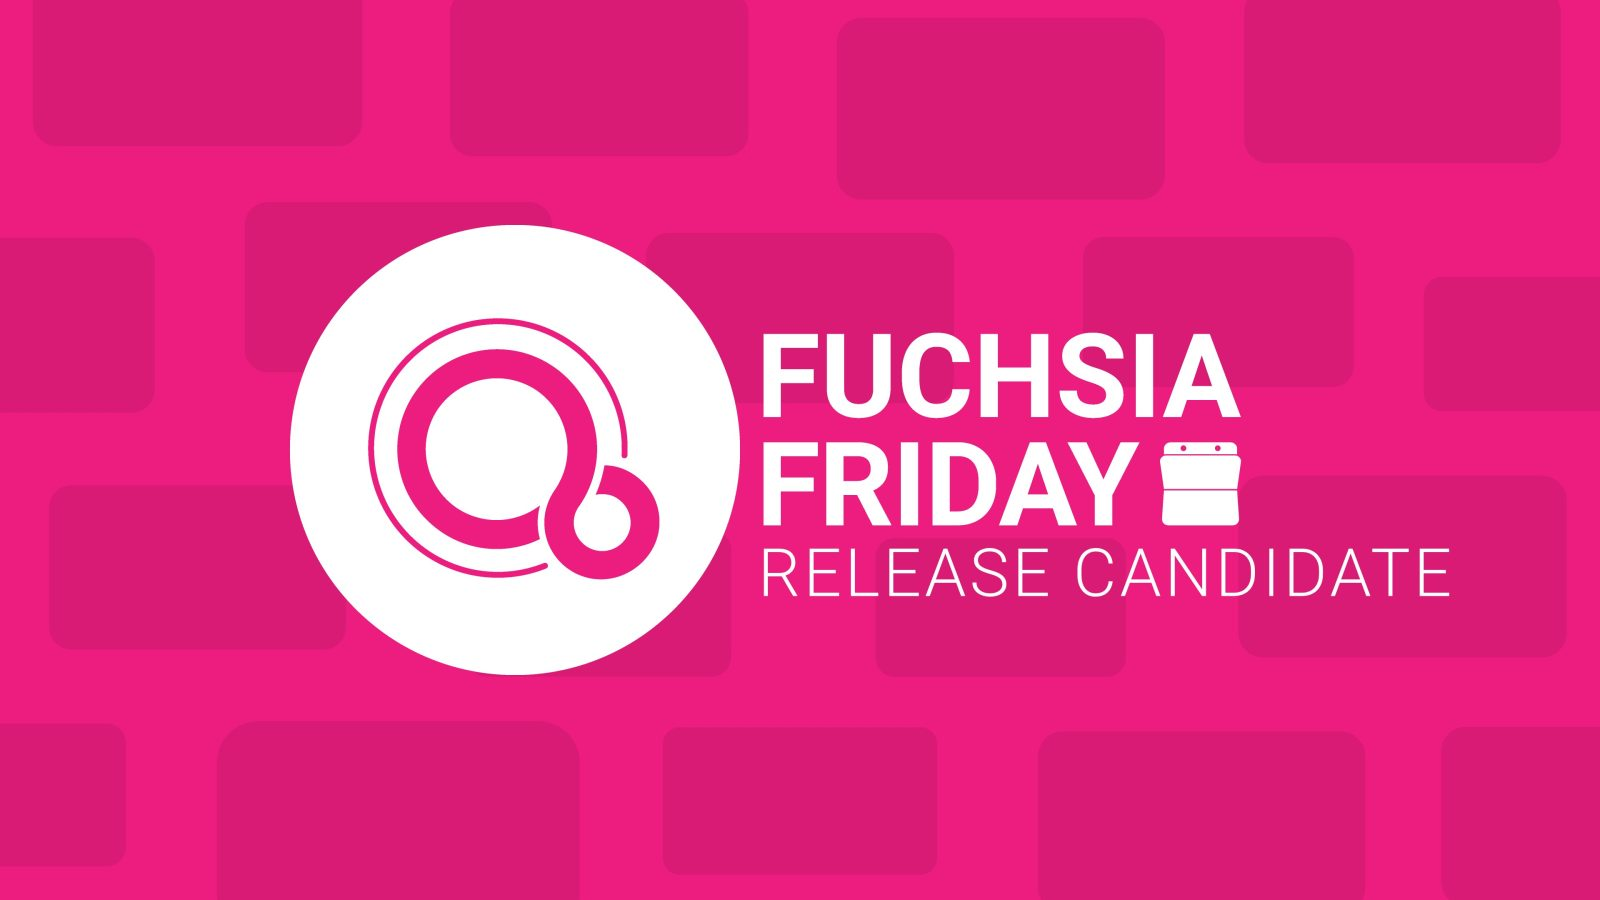 Fuchsia Friday: Why did the Fuchsia team build a 'release candidate' in February?